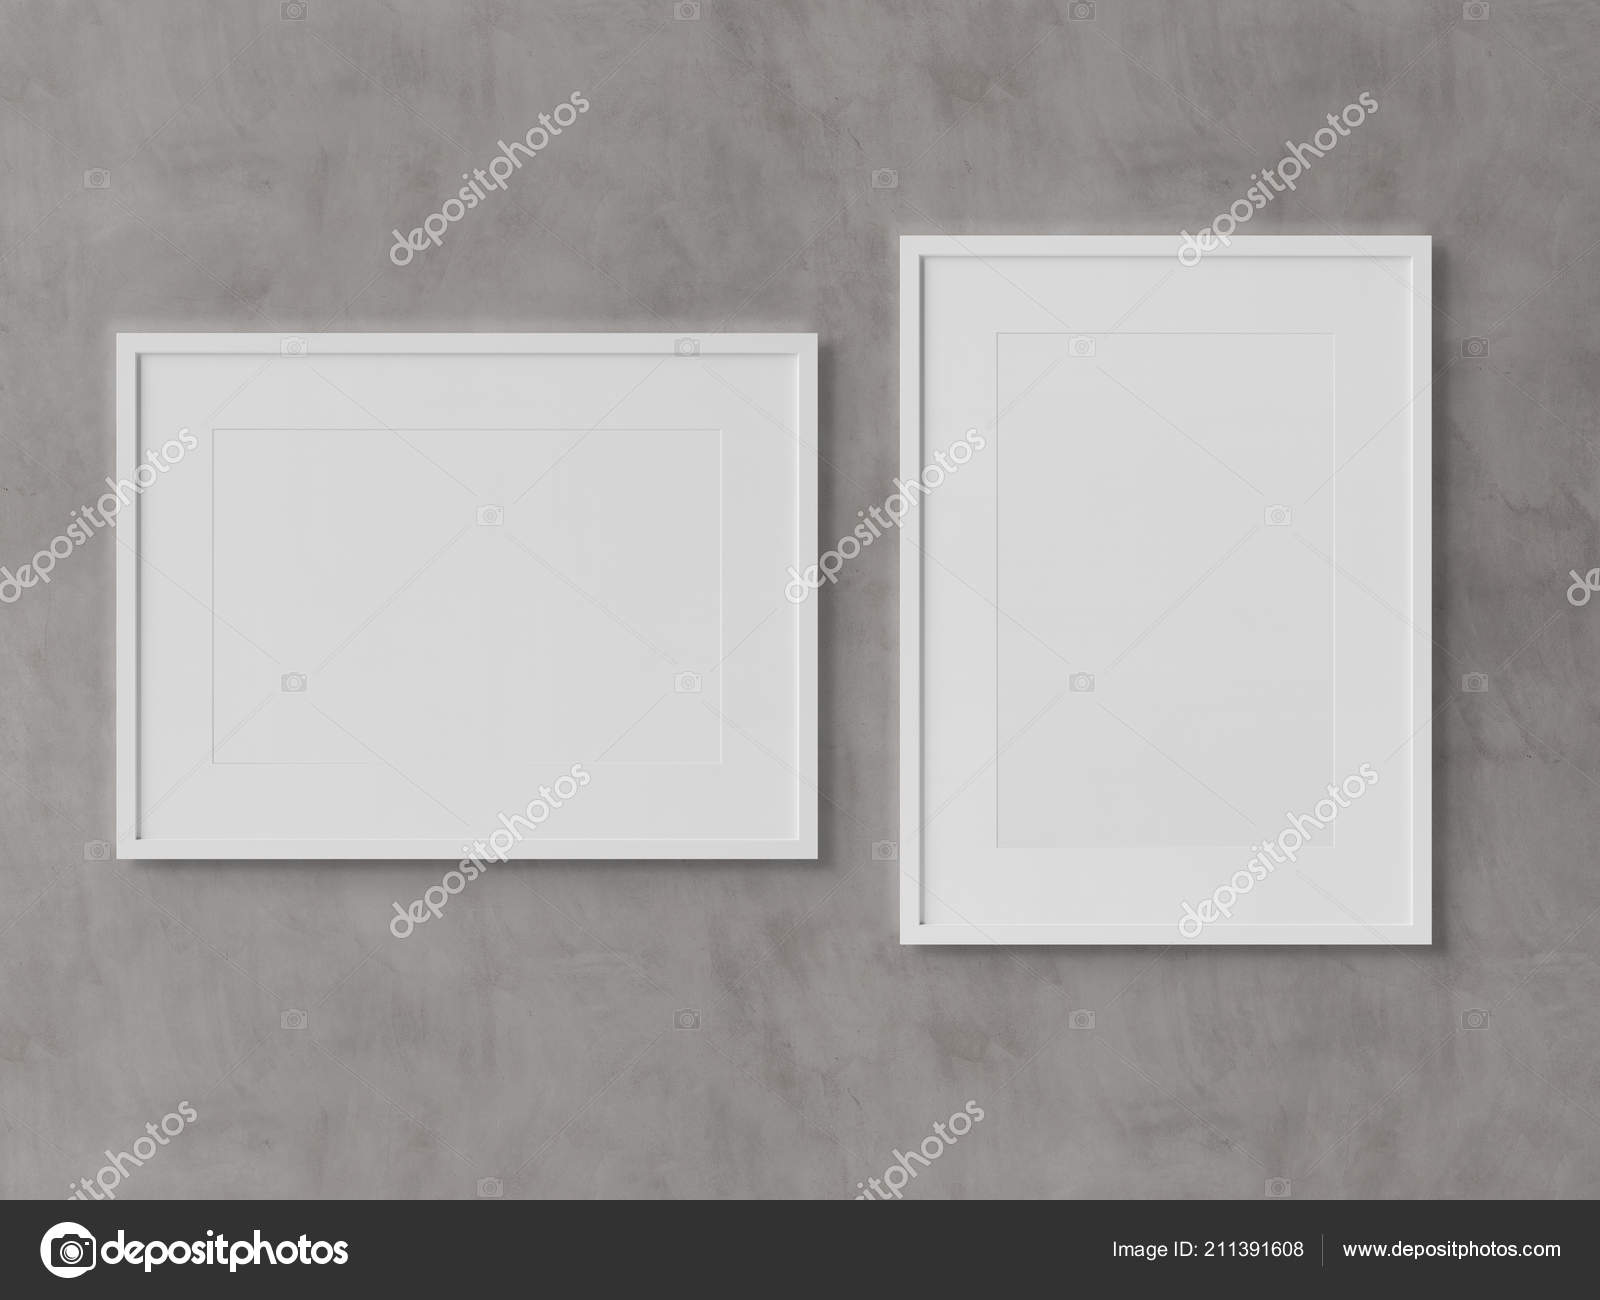 White Rectangular Frames Hanging On A White Textured Wall Mockup